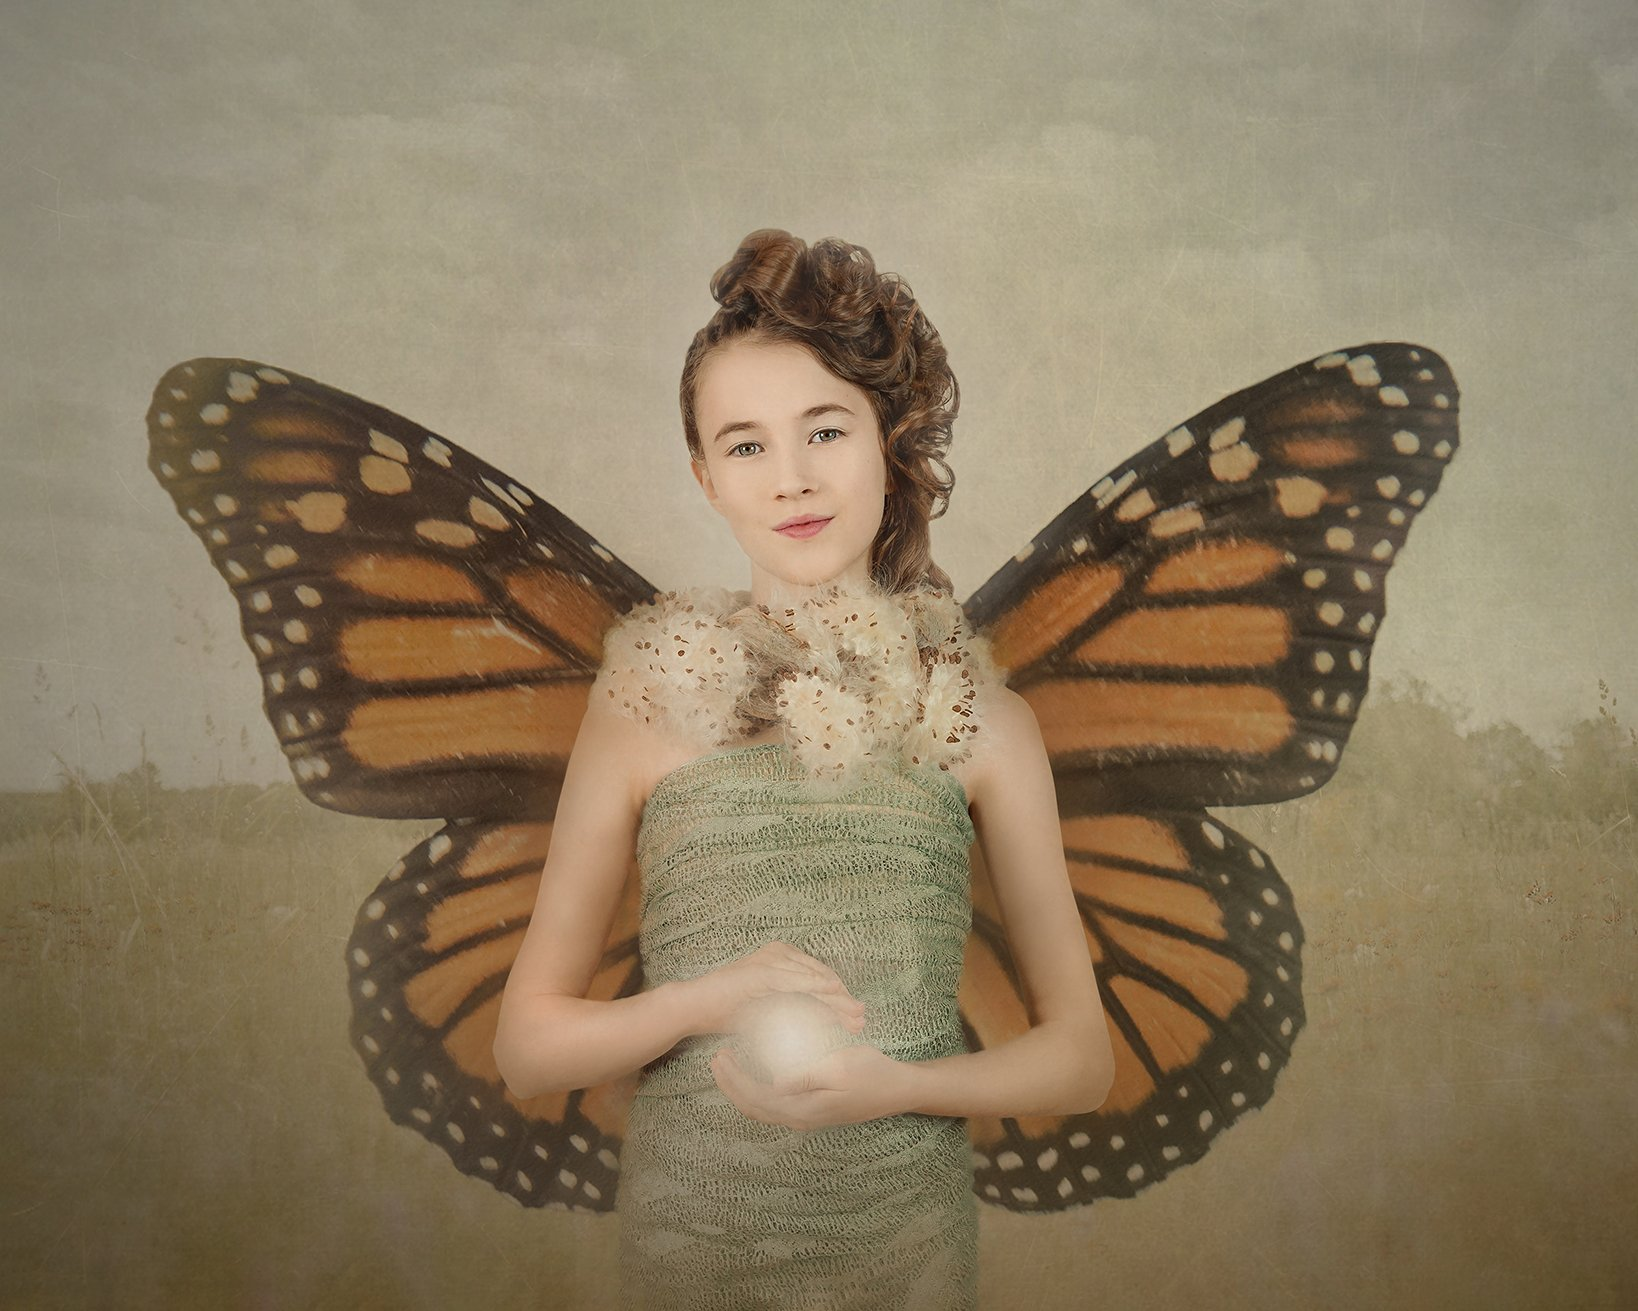 Texture overlay added to a portrait of a girl with monarch butterfly wings